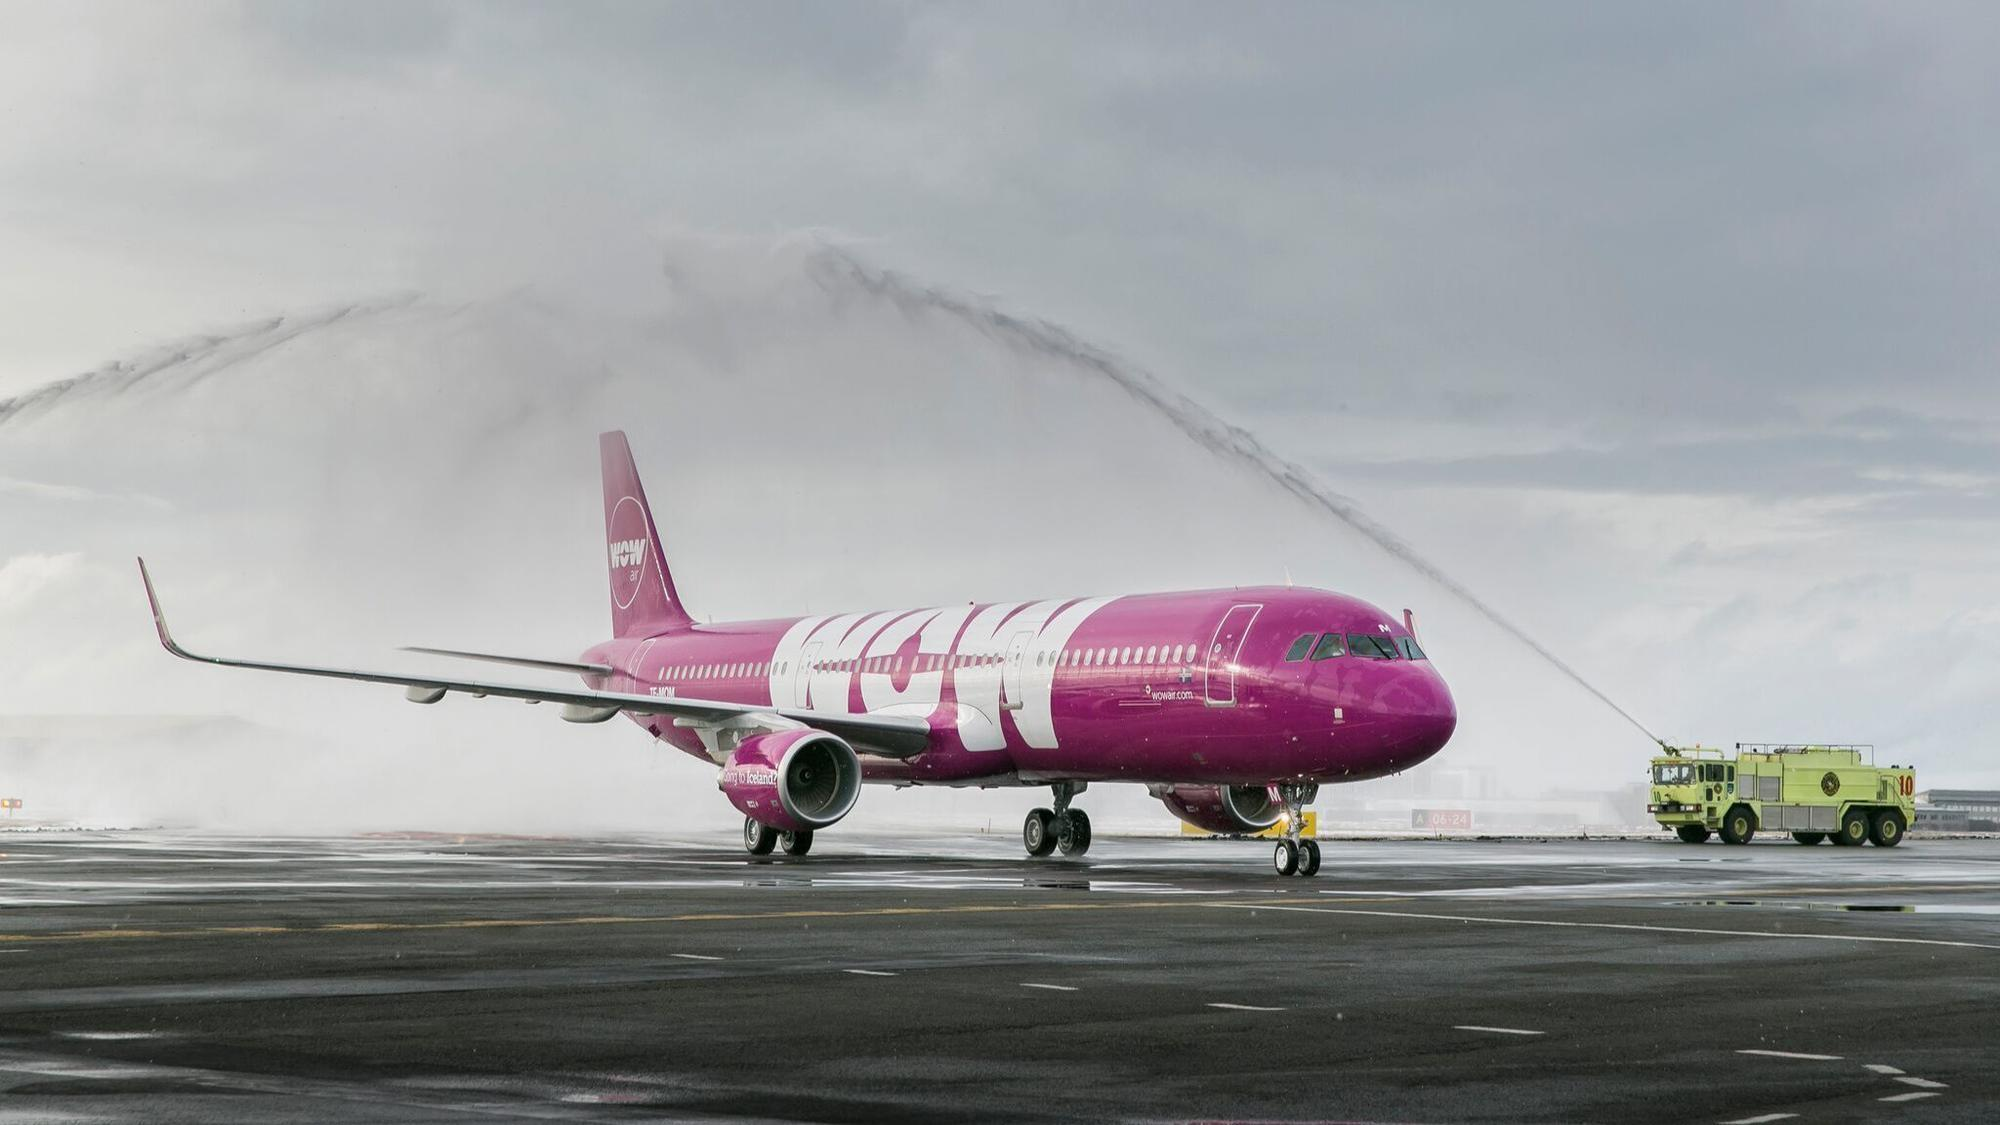 wow air to launch orlando to europe flights in december starting at 99 orlando sentinel. Black Bedroom Furniture Sets. Home Design Ideas